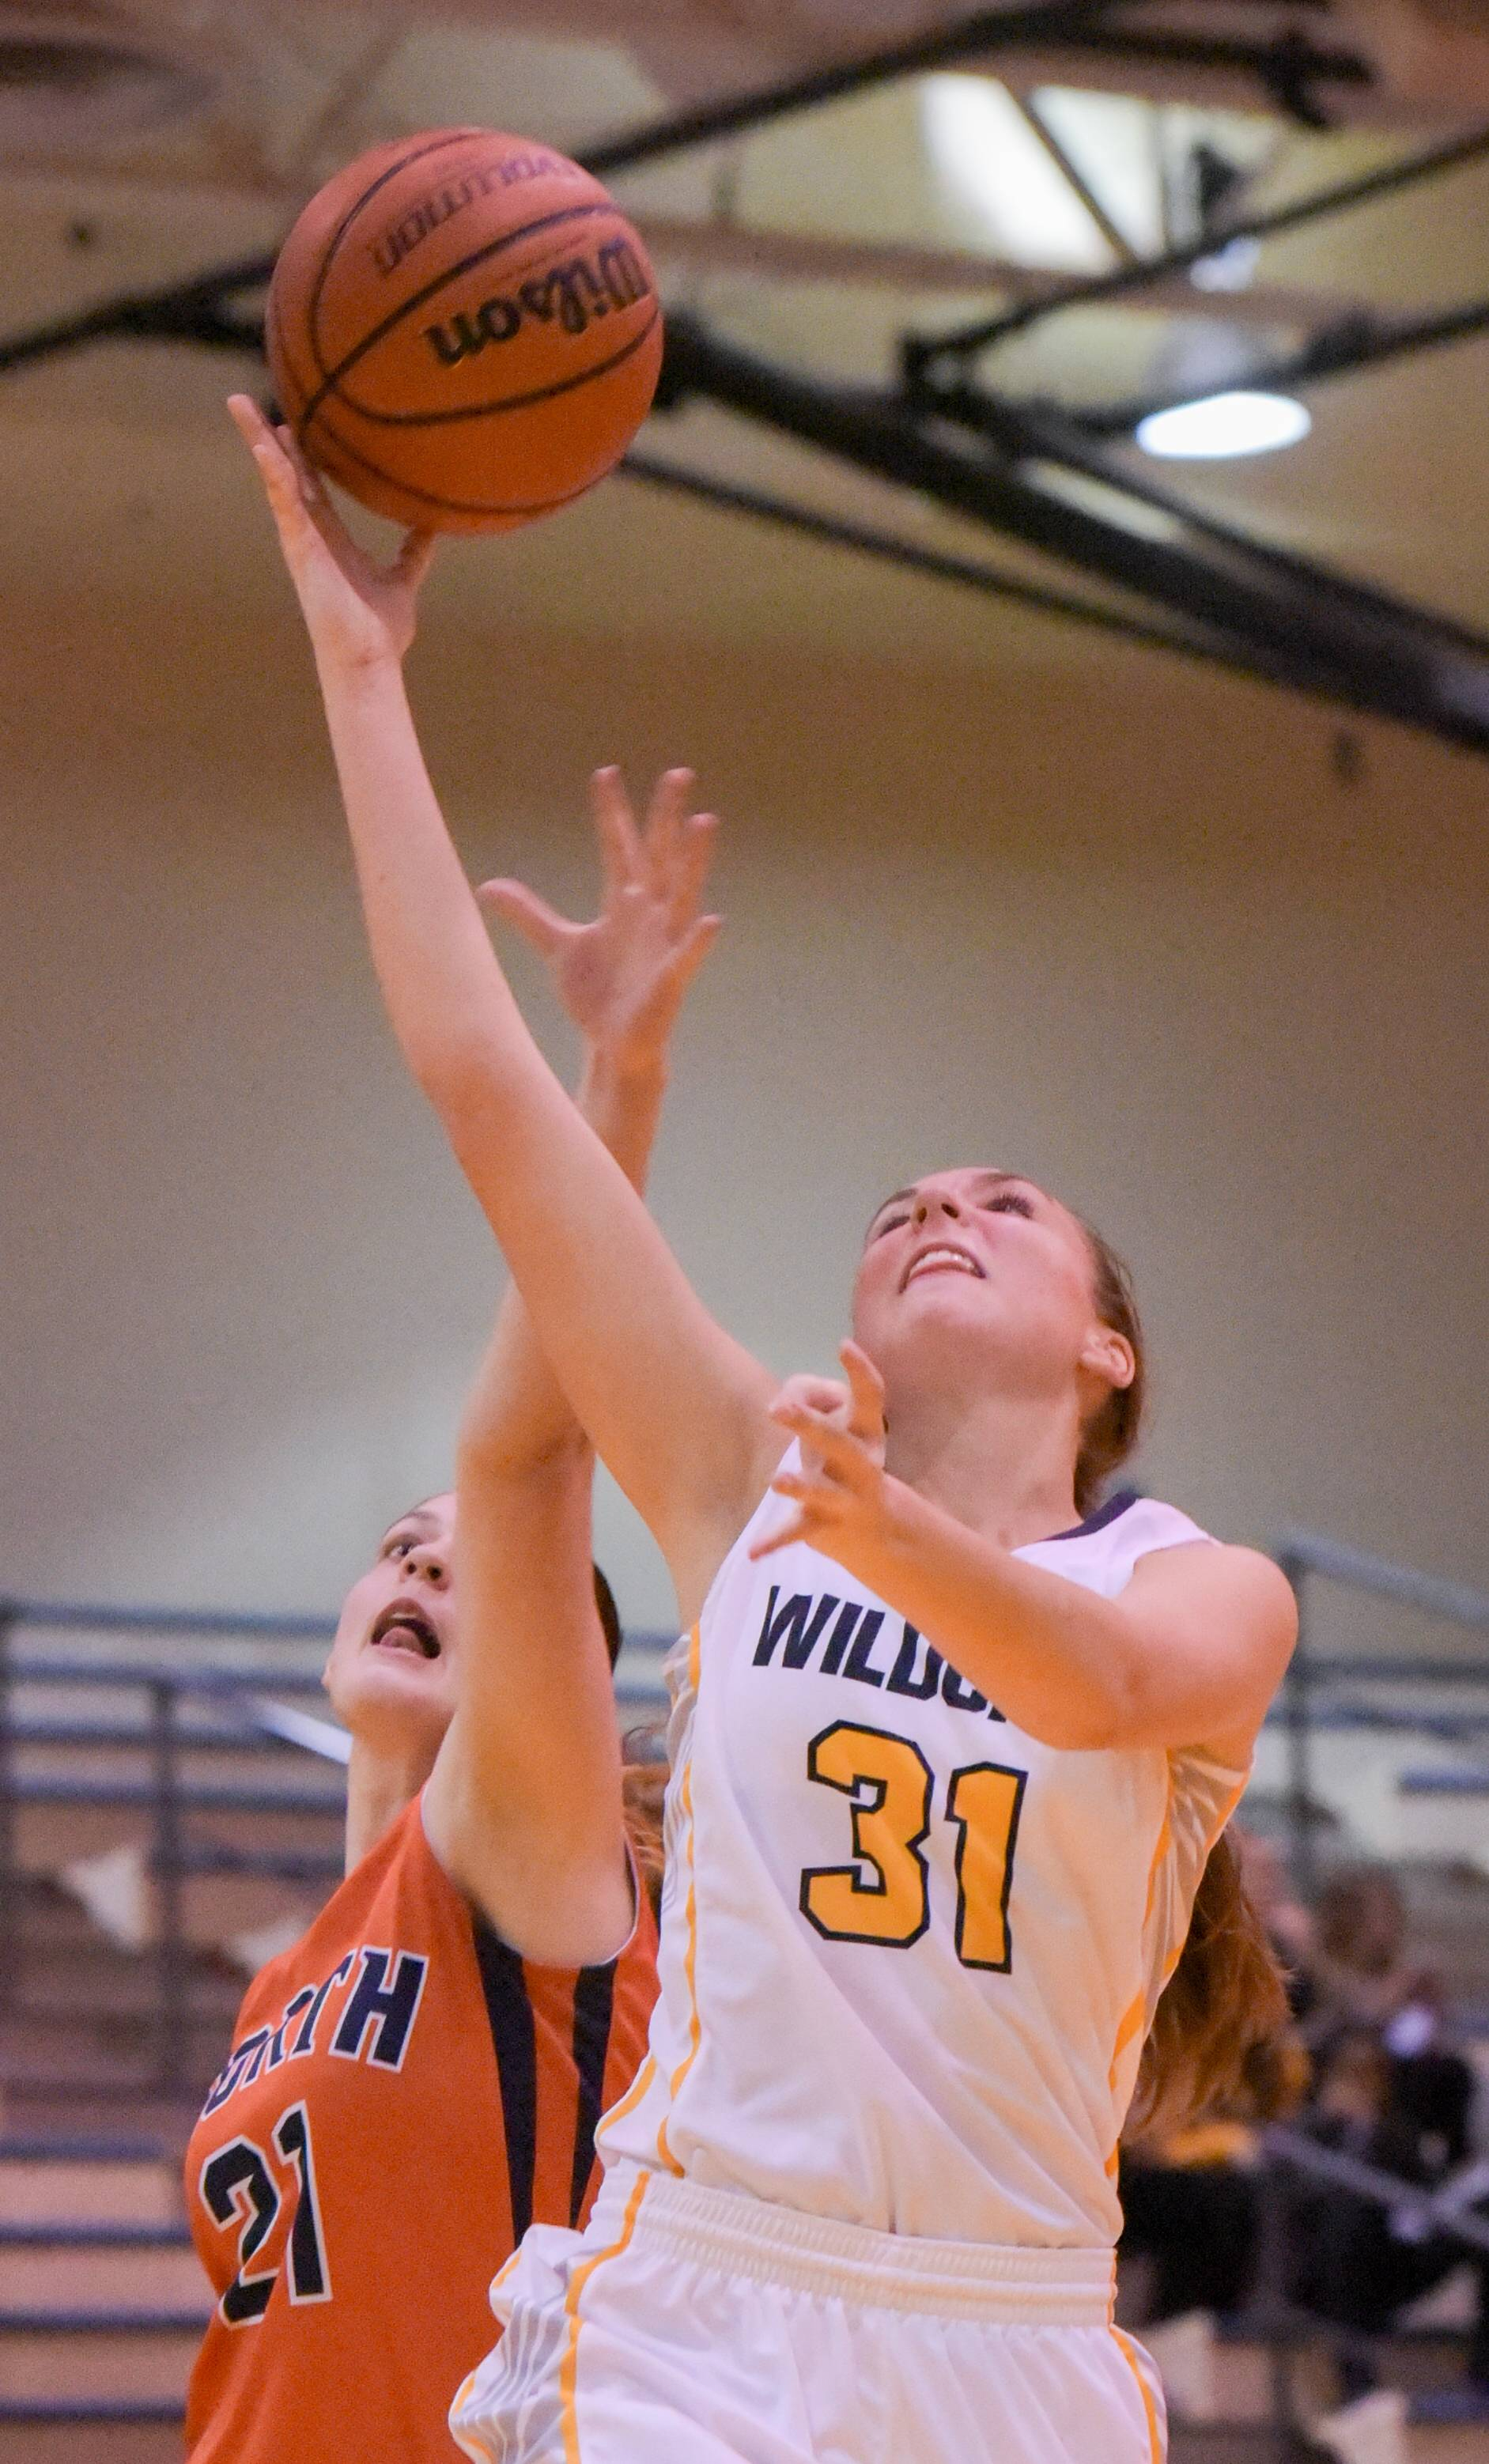 Neuqua Valley's Ashley Ishman after getting by Naperville North's Piper Fenner during girls basketball at on Wednesday, Jan. 10, 2018.